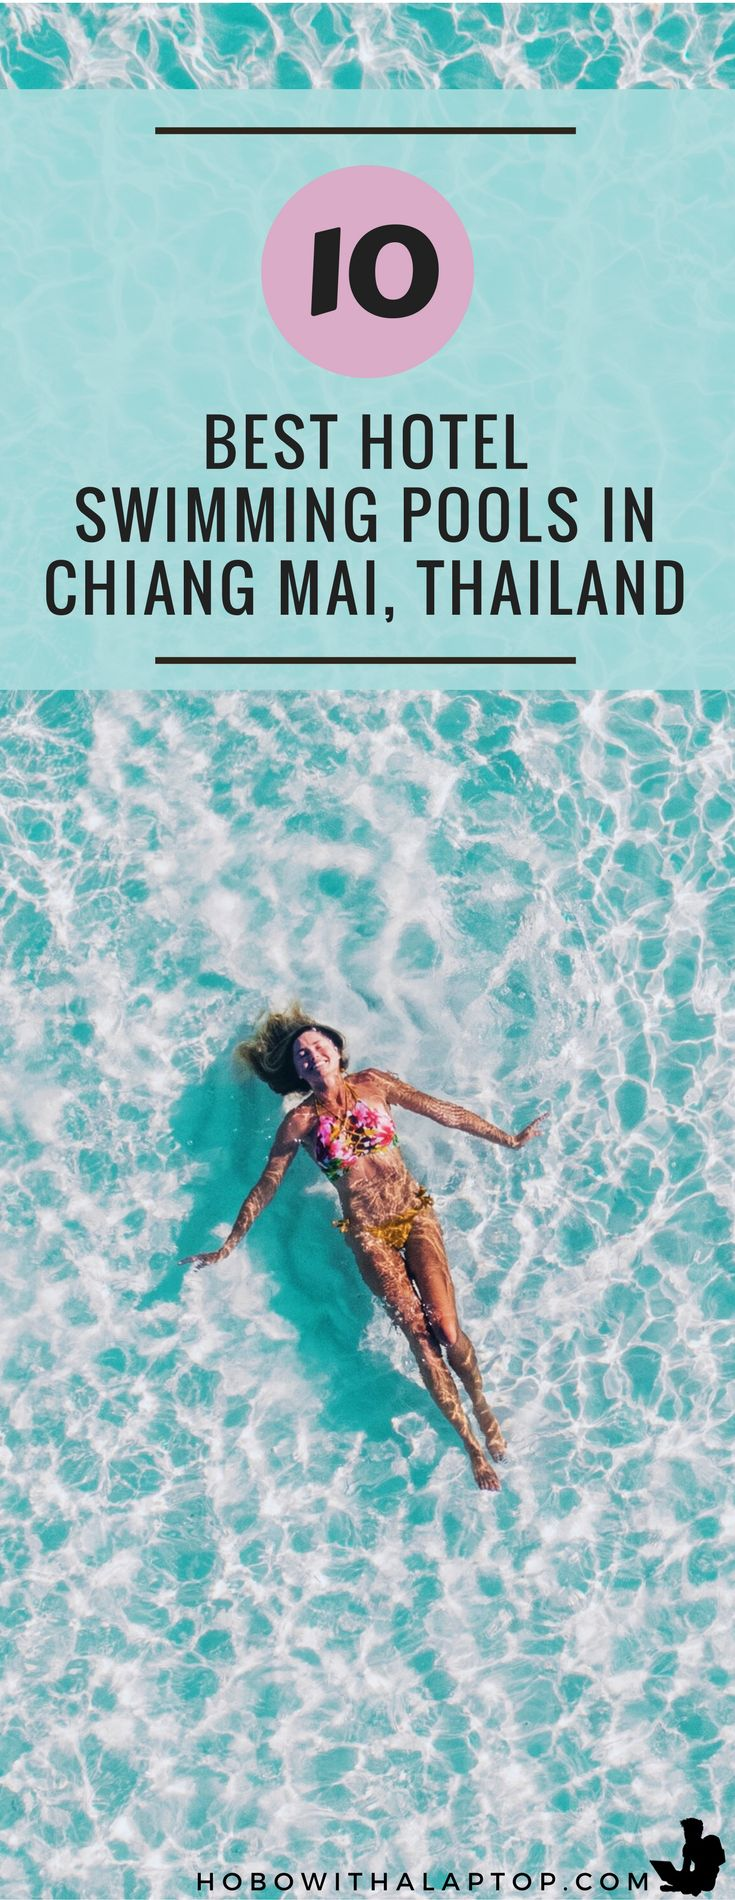 Cool down and chill out at these wonderful pools situated in the most ideal locations in Chiang Mai, Thailand. You never have to leave the hotel when you're relaxing in one of these spacious, crystal-clear pools.